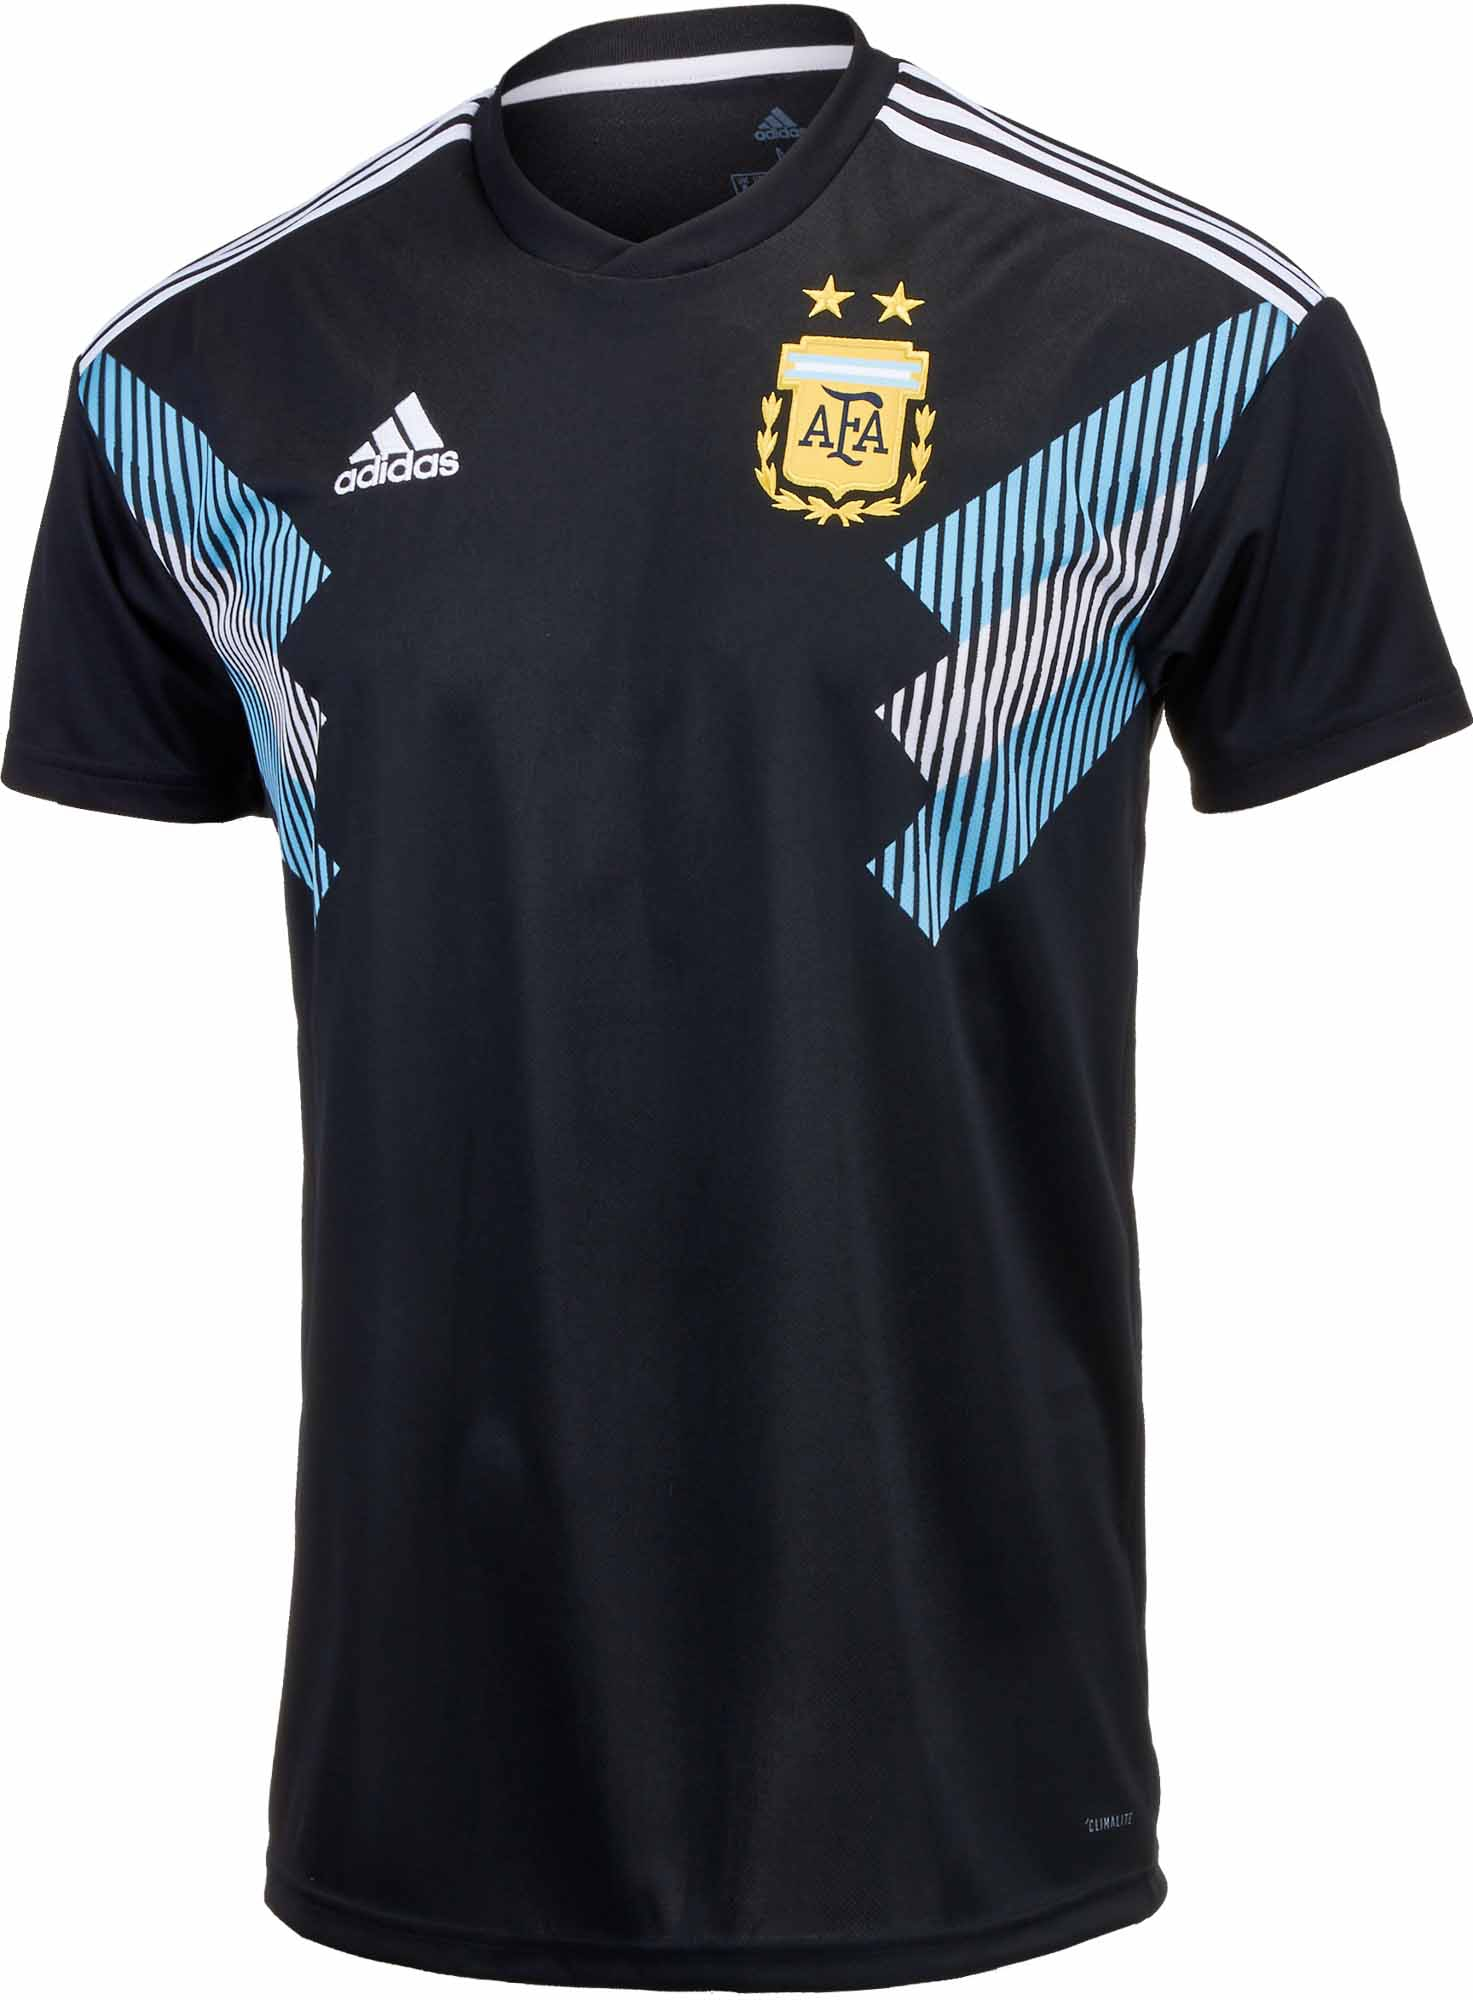 0c57ac2261a Jersey - Argentina Away Kit World Cu (end 2/4/2021 12:00 AM)